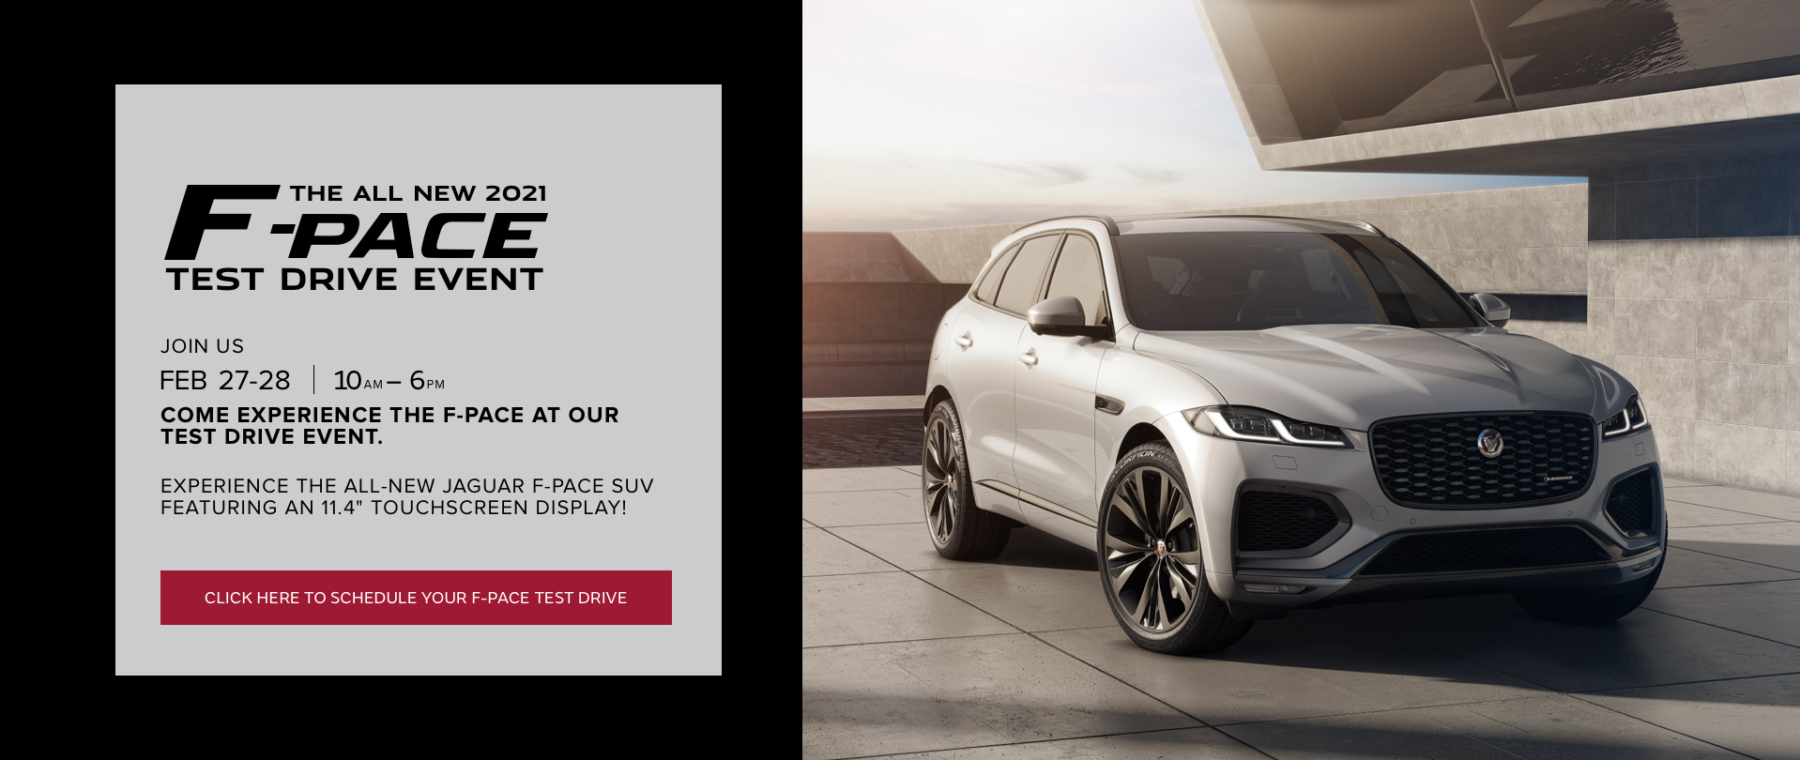 JLR_F-PACE-Test-Drive-Homepage-Banner